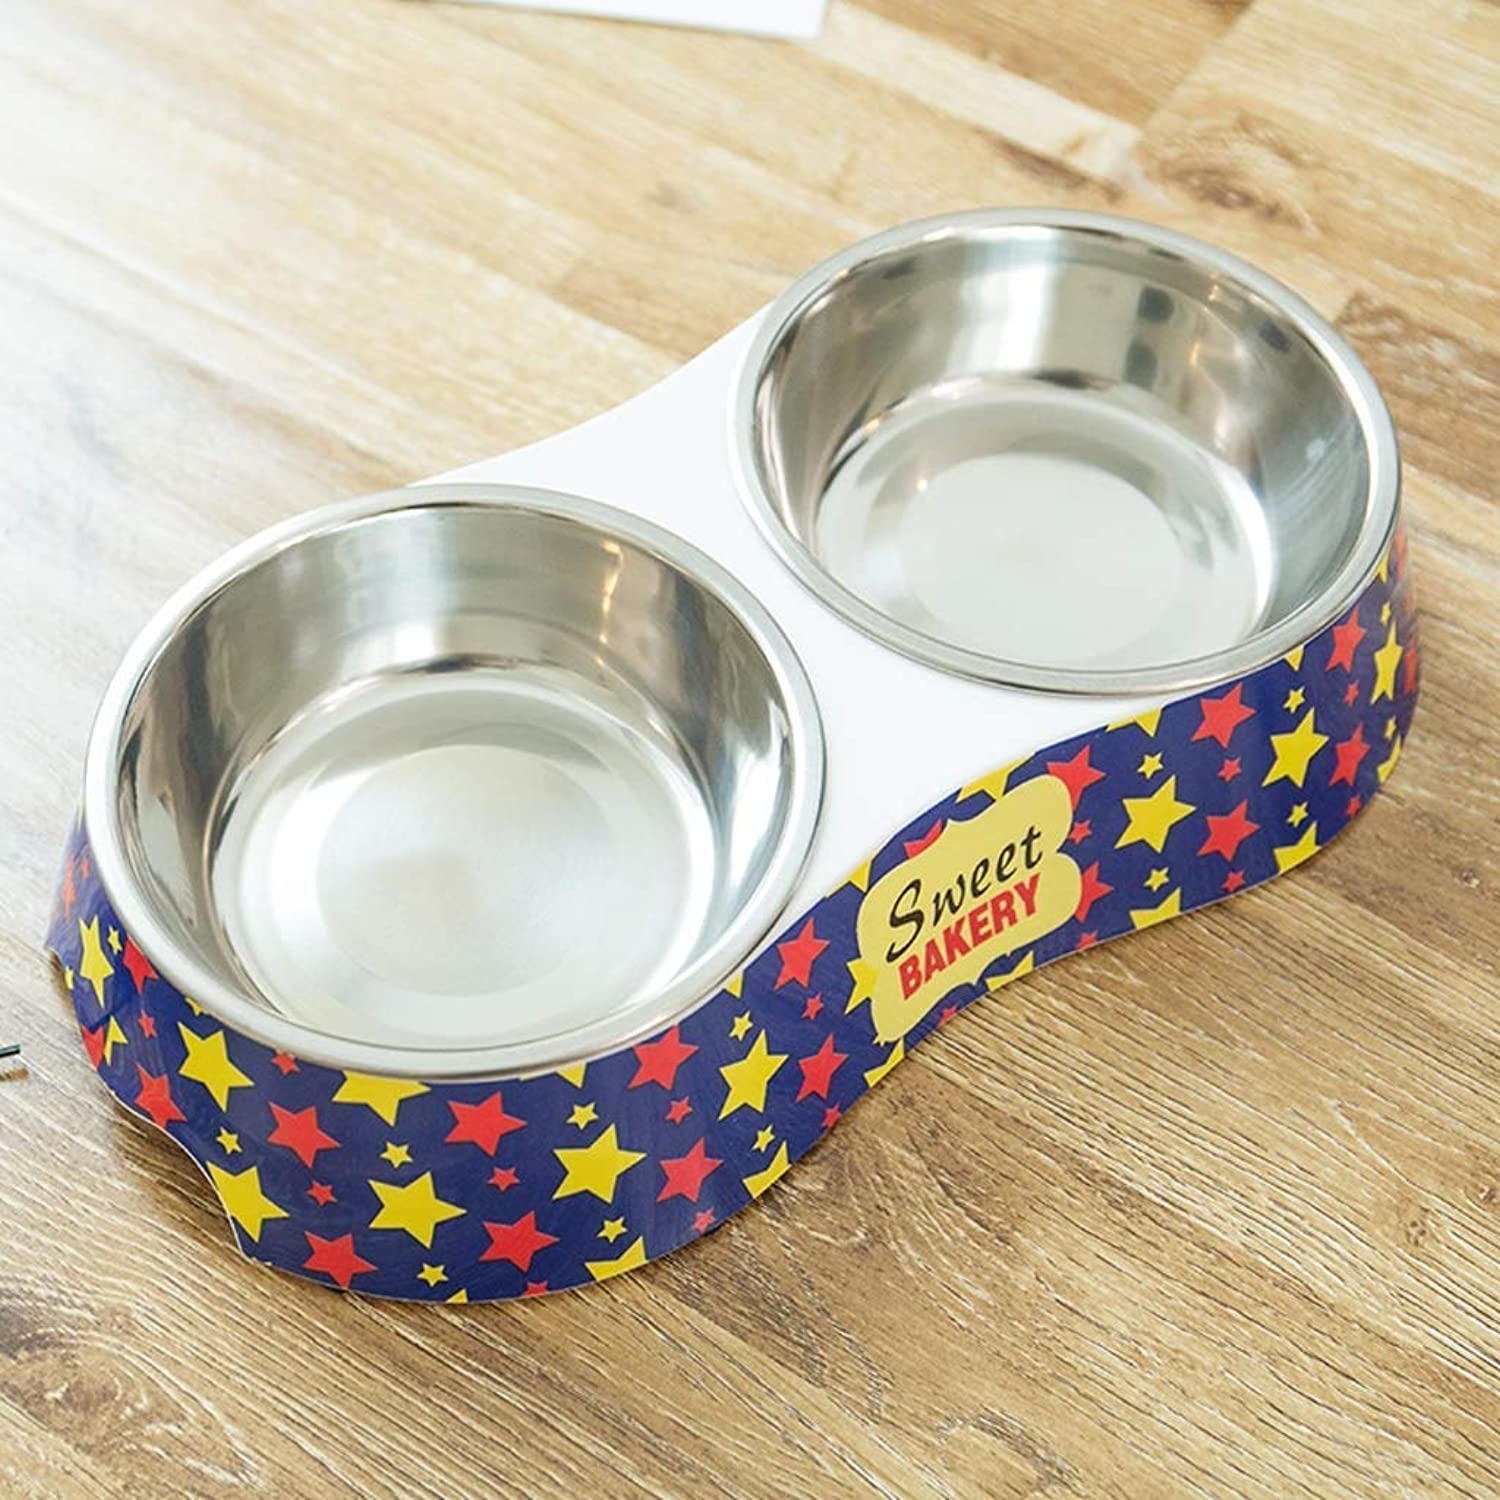 HVTKL Dog Food Bowl Stainless Steel NonSlip Double Bowl Cat Bowl bluee Stars Pet Supplies (Size   S)